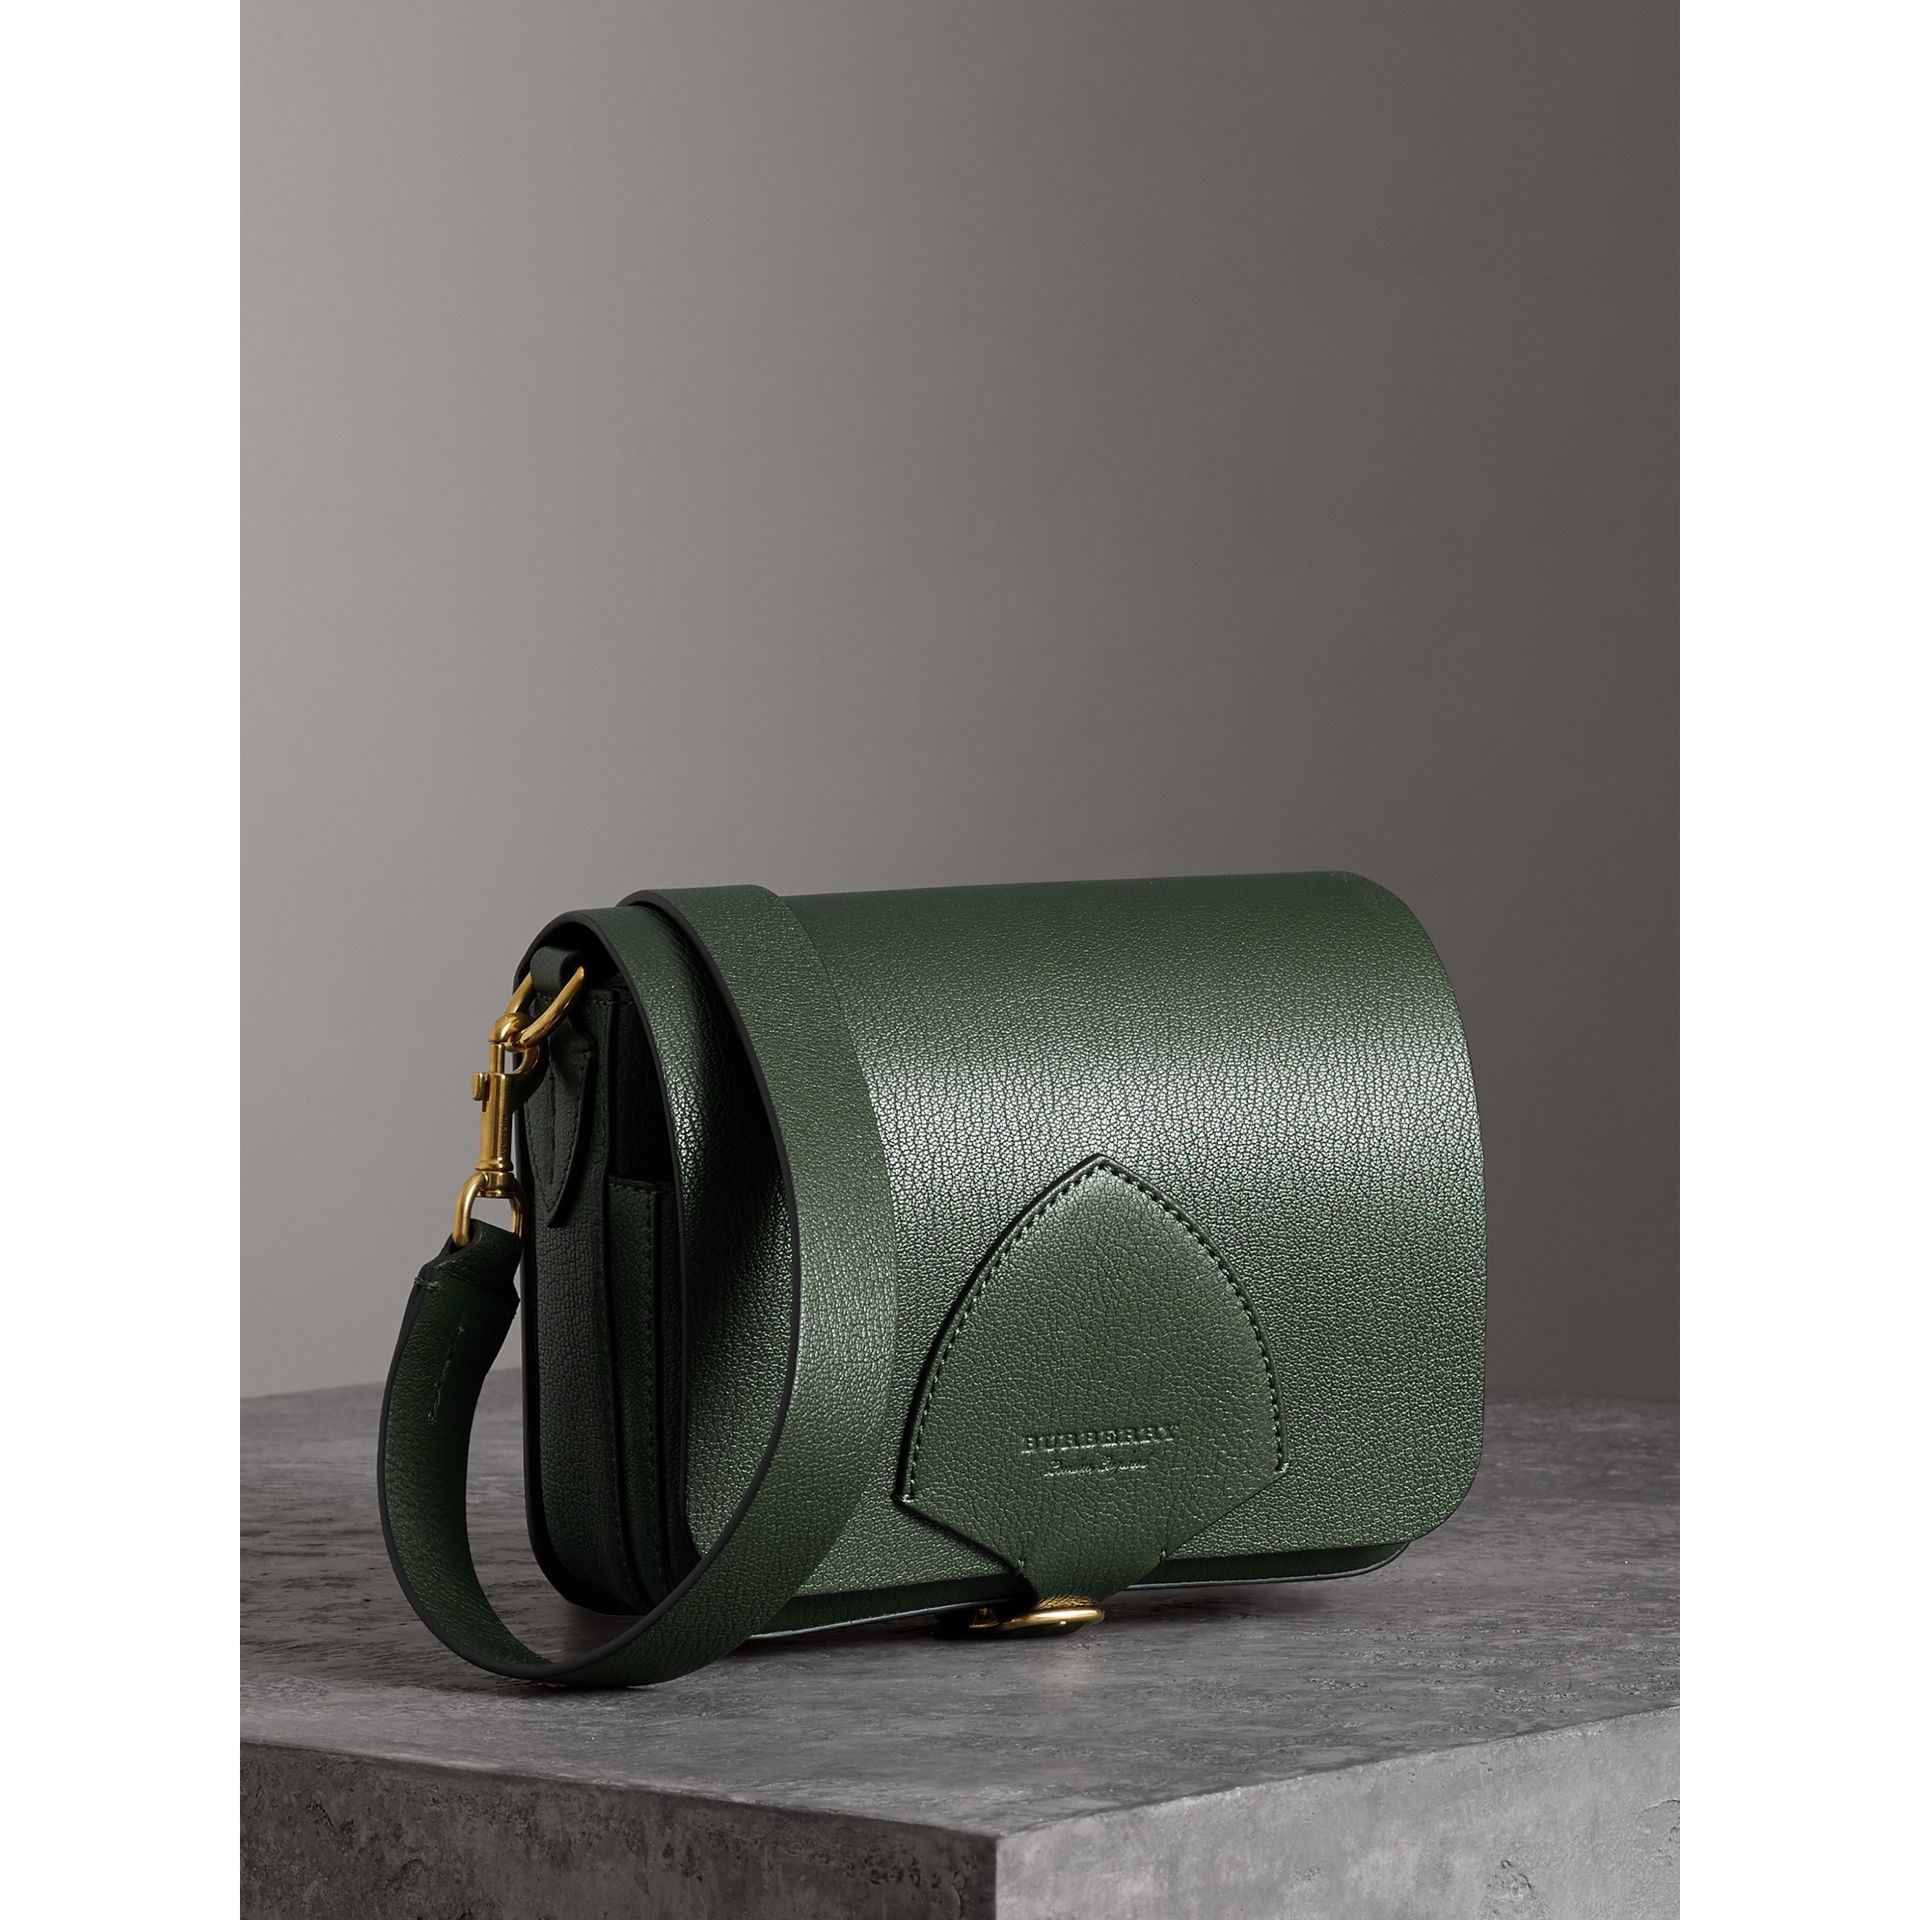 The Square Satchel in Leather in Dark Forest Green - Women | Burberry Australia - gallery image 4